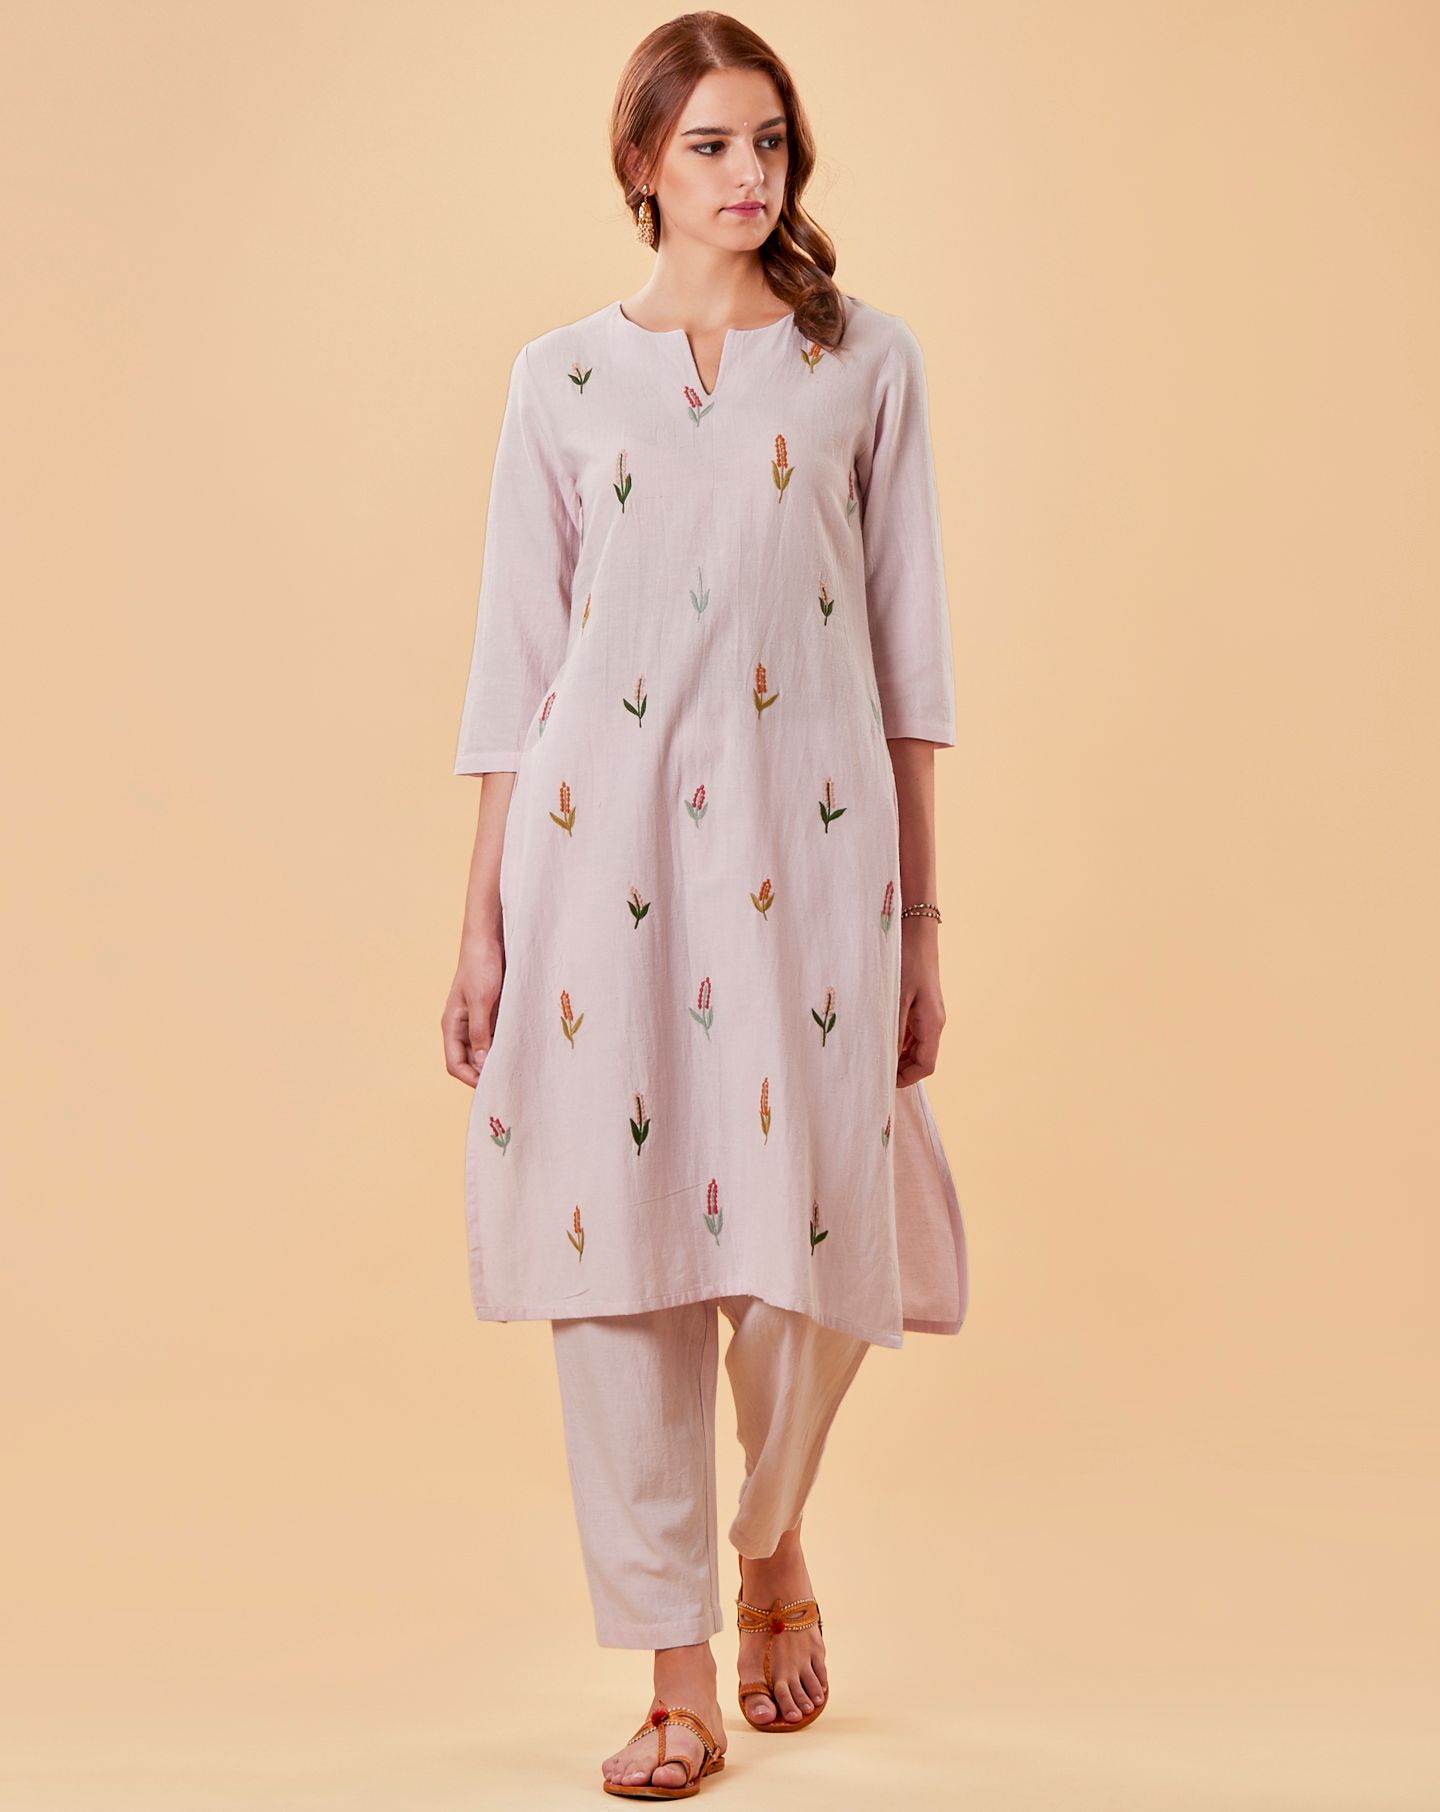 Light Pink Embroidered Cotton Linen Kurta with Pants - Set of 2